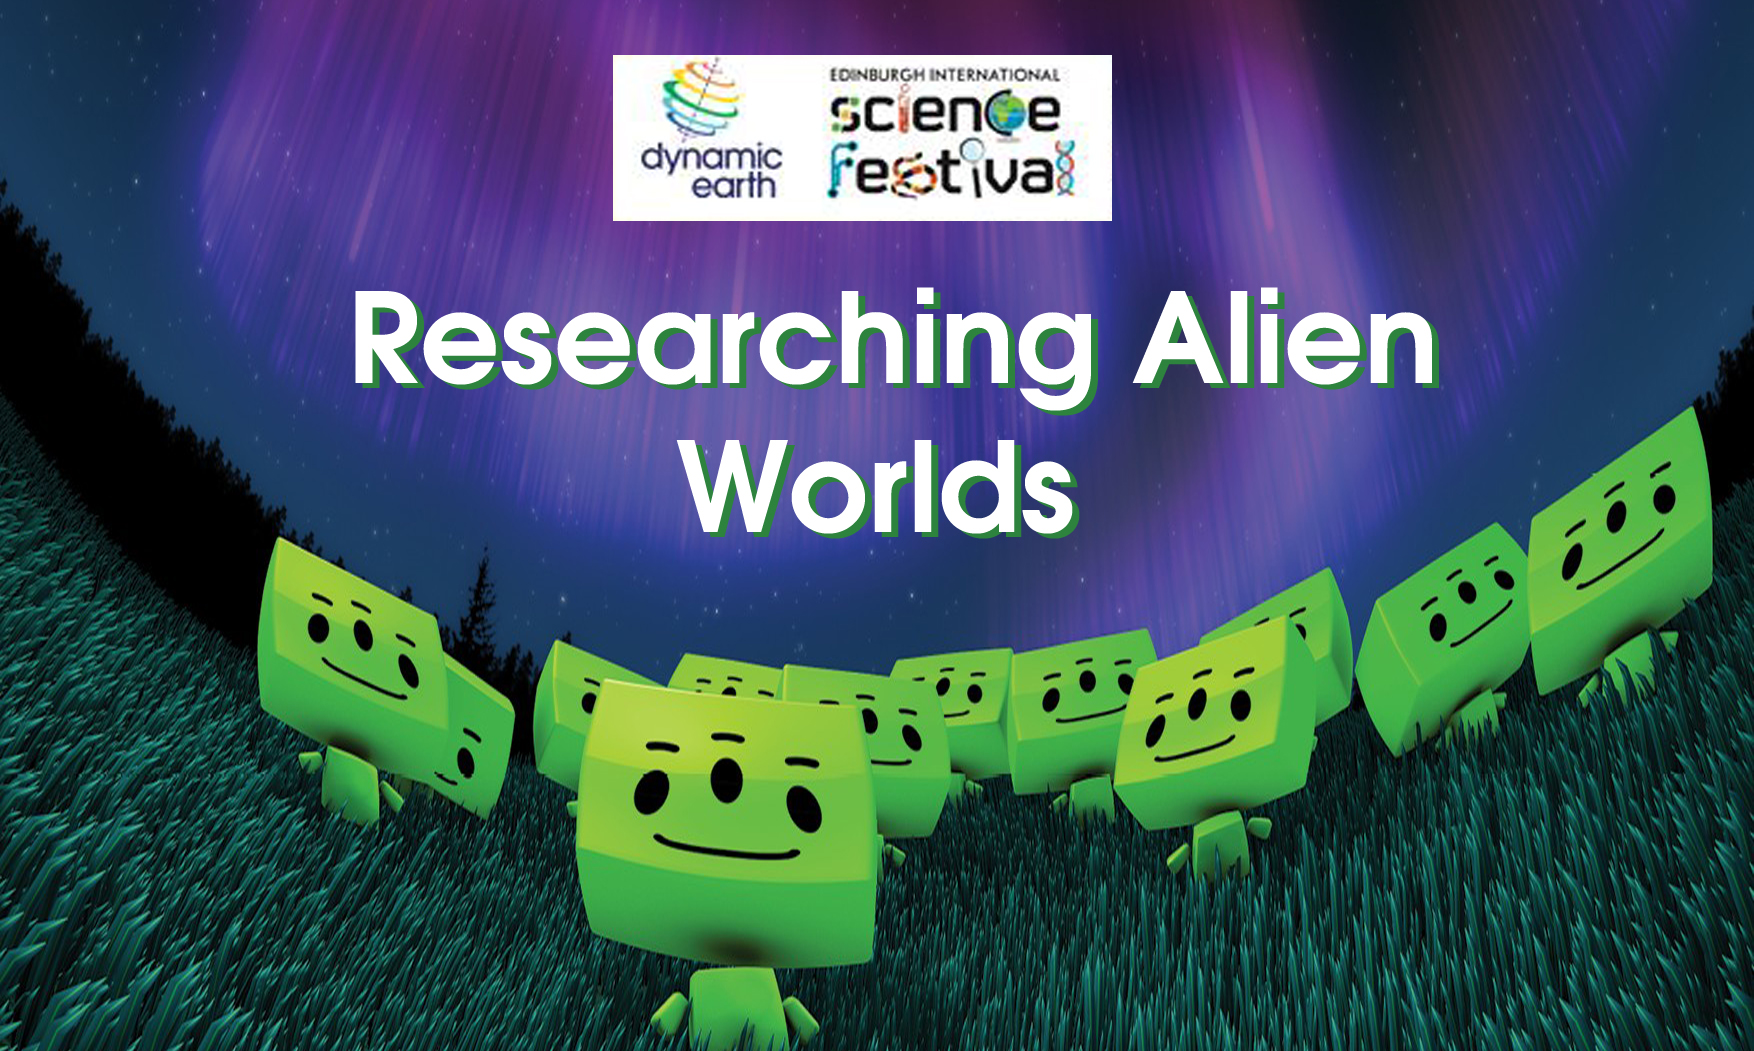 Researching Alien Worlds - Special Show Dome Event